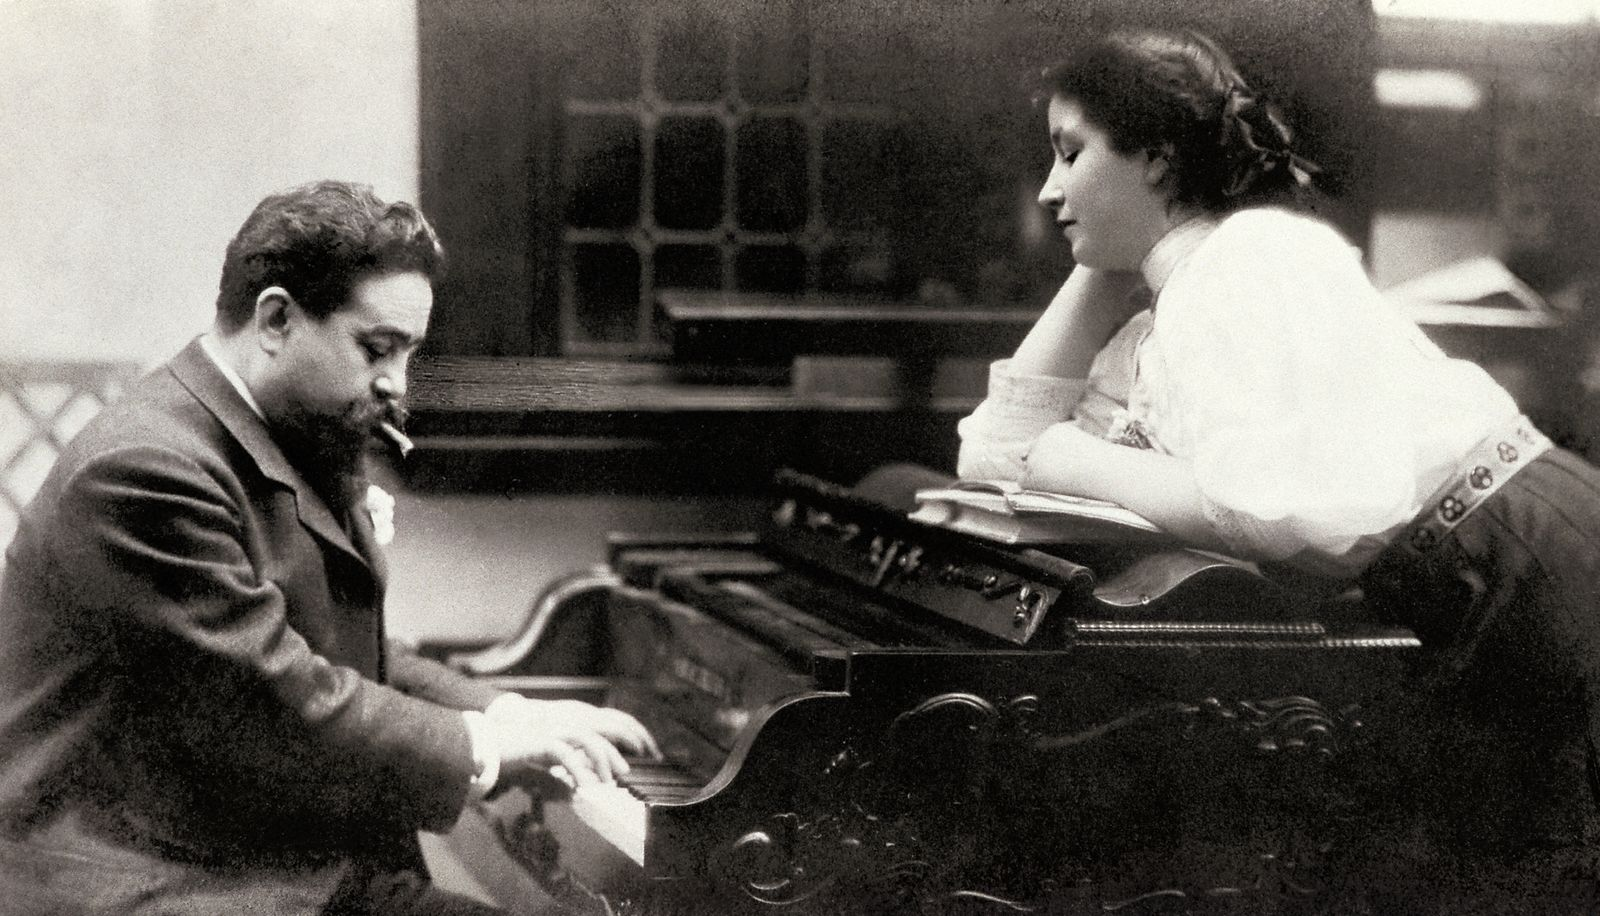 ALBENIZ, Isaac (1860-1909). Spanish pianist and composer. Portrait of Isaac Albeniz on the piano with his younger daughter Laura (1908). SPAIN. Madrid. Albeniz Foundation.